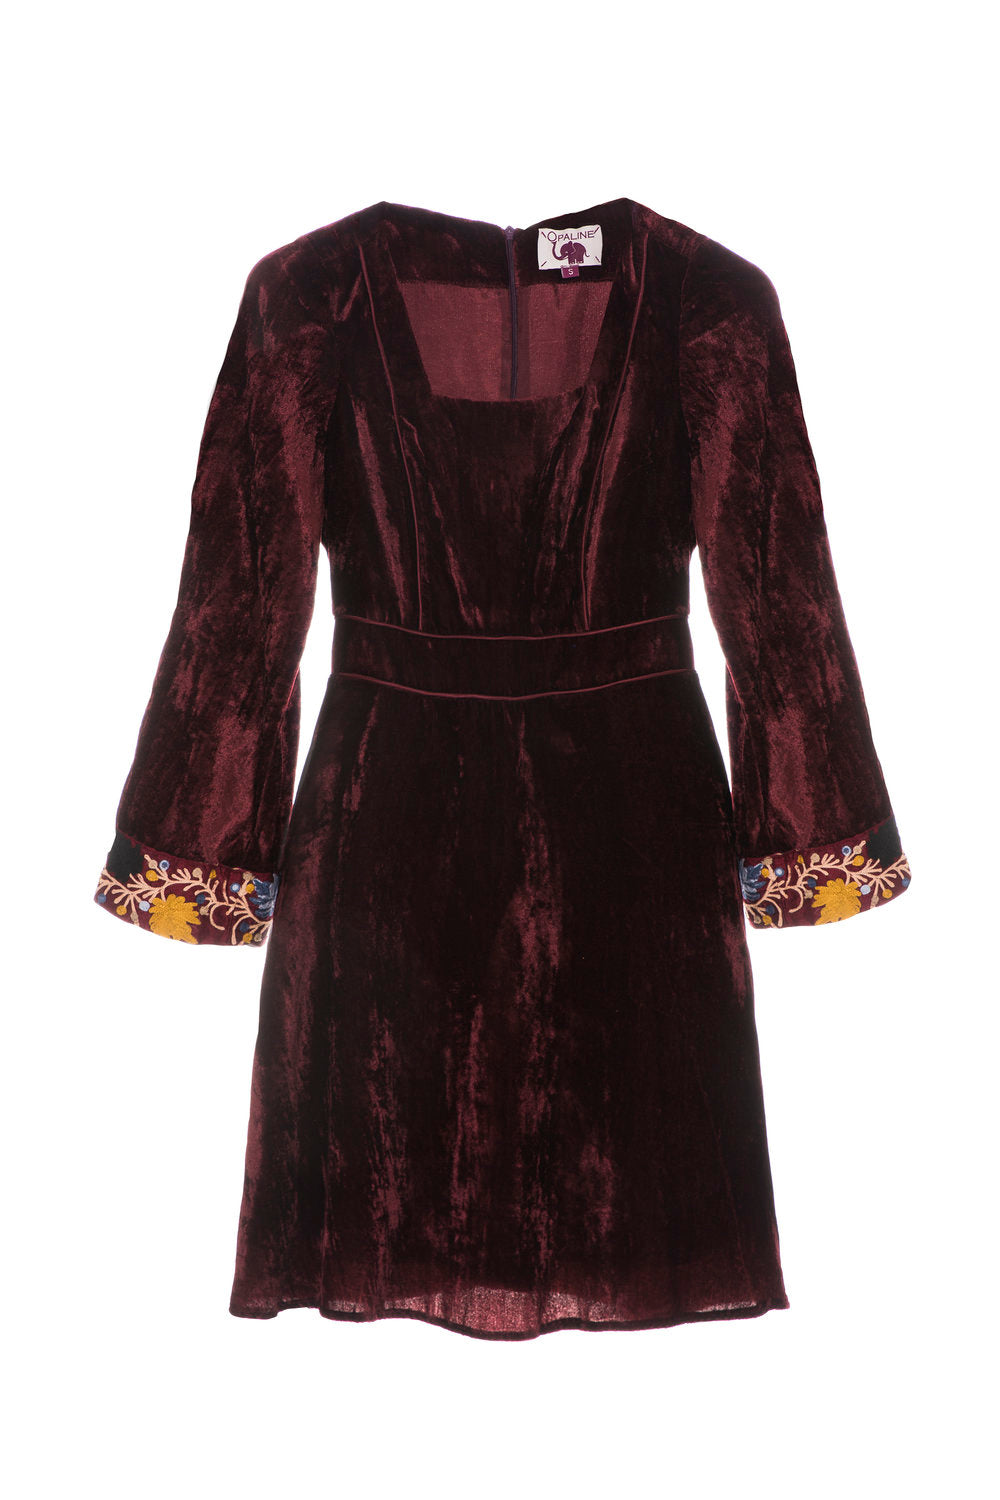 Velvet bordeaux dress